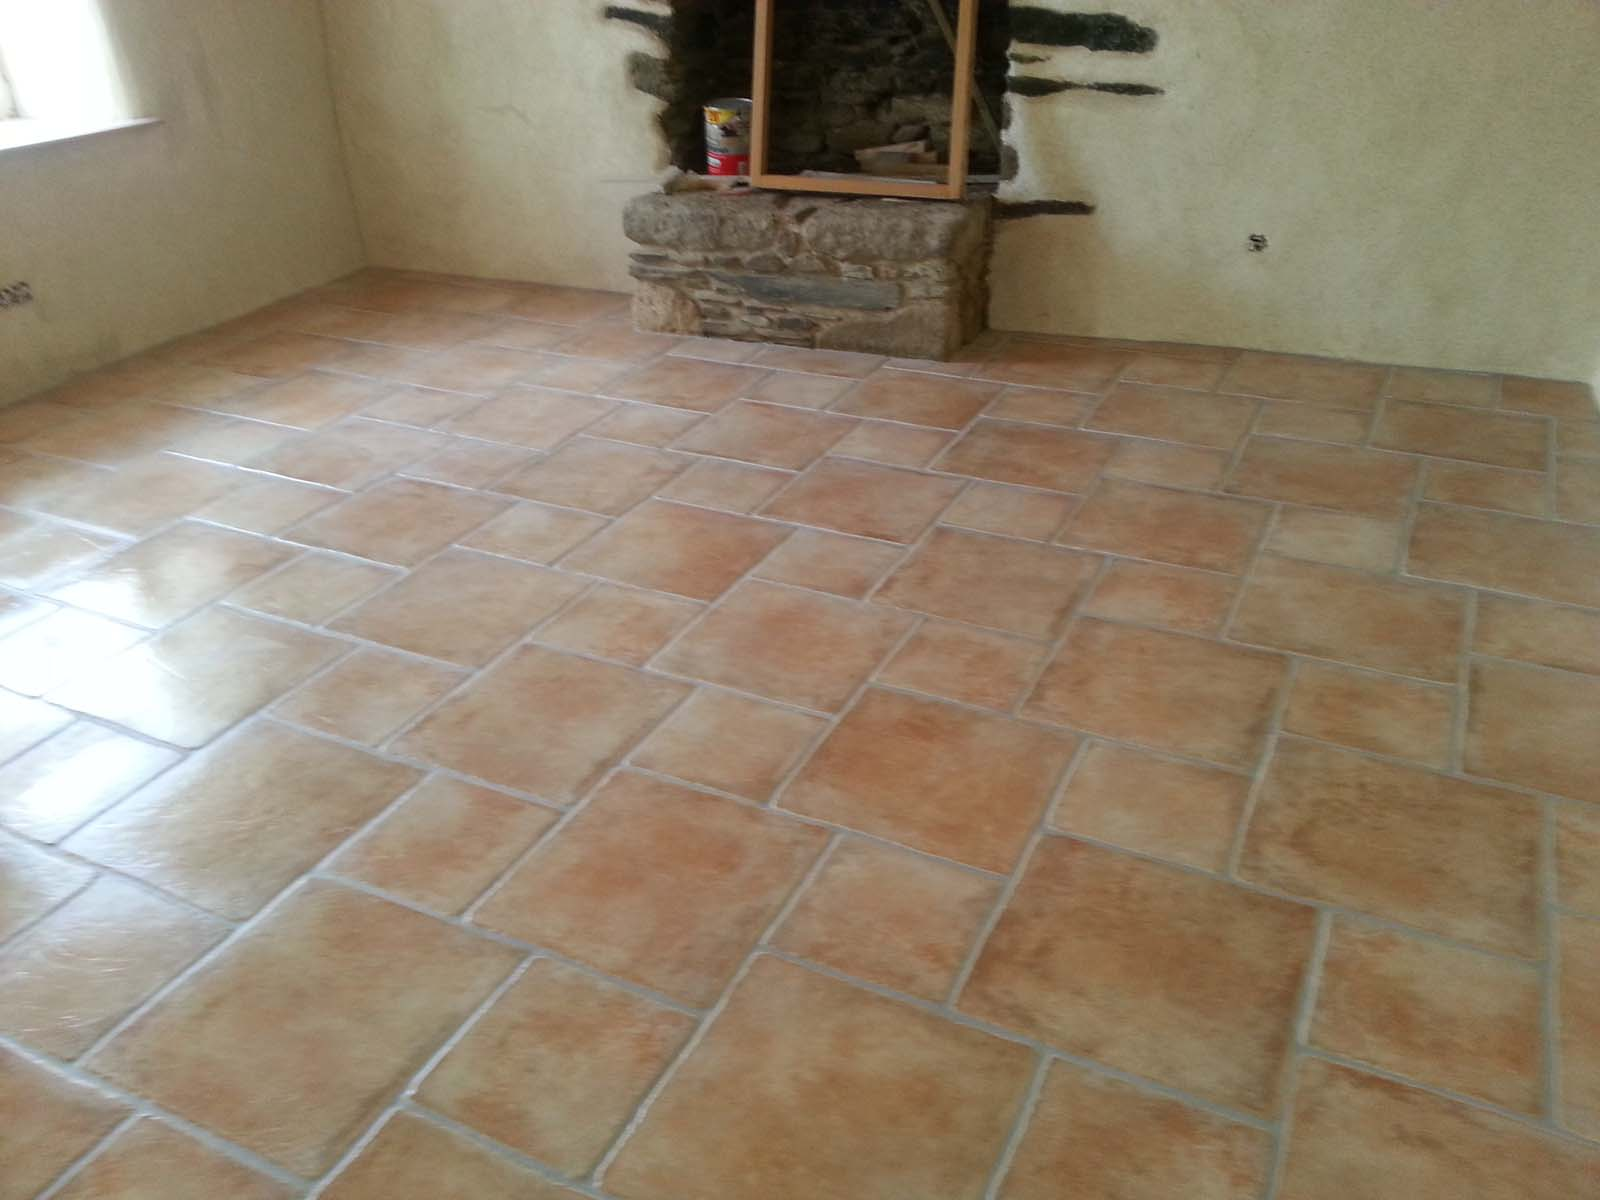 Planchers carrelage for Carrelage en faience